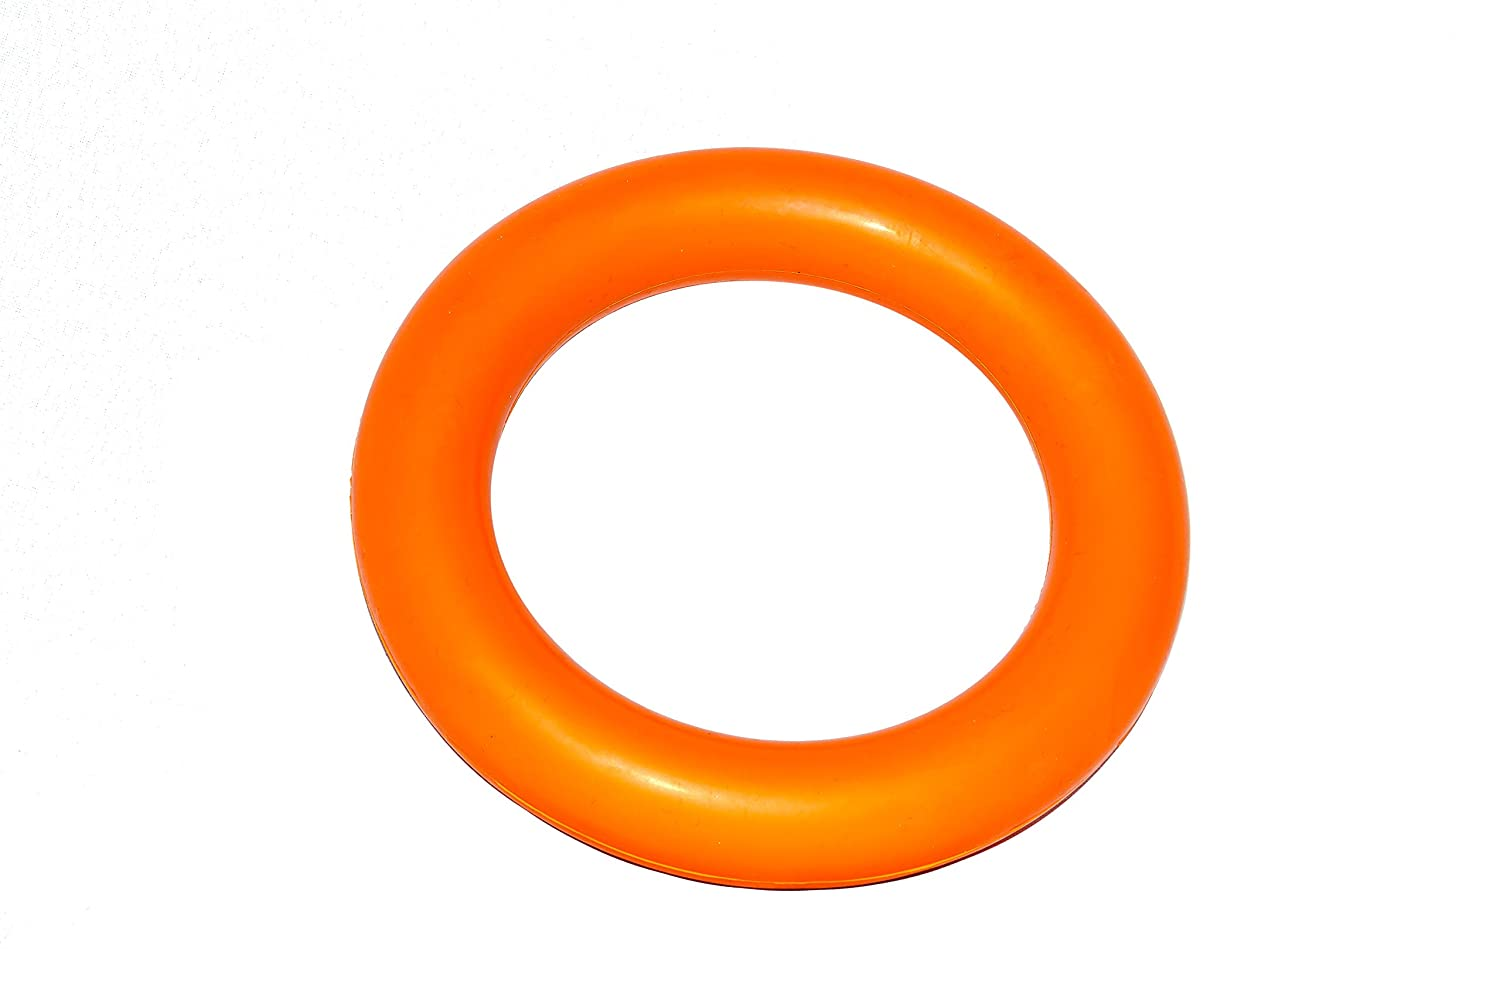 PlayfulSpirit Durable Natural Rubber Ring - Best for Tug War, Throw, Catch, Fetch Plays - Great Chew Toy for Puppies and Adult Dogs – Awesome for Dog Training – Fun Playtime Guaranteed